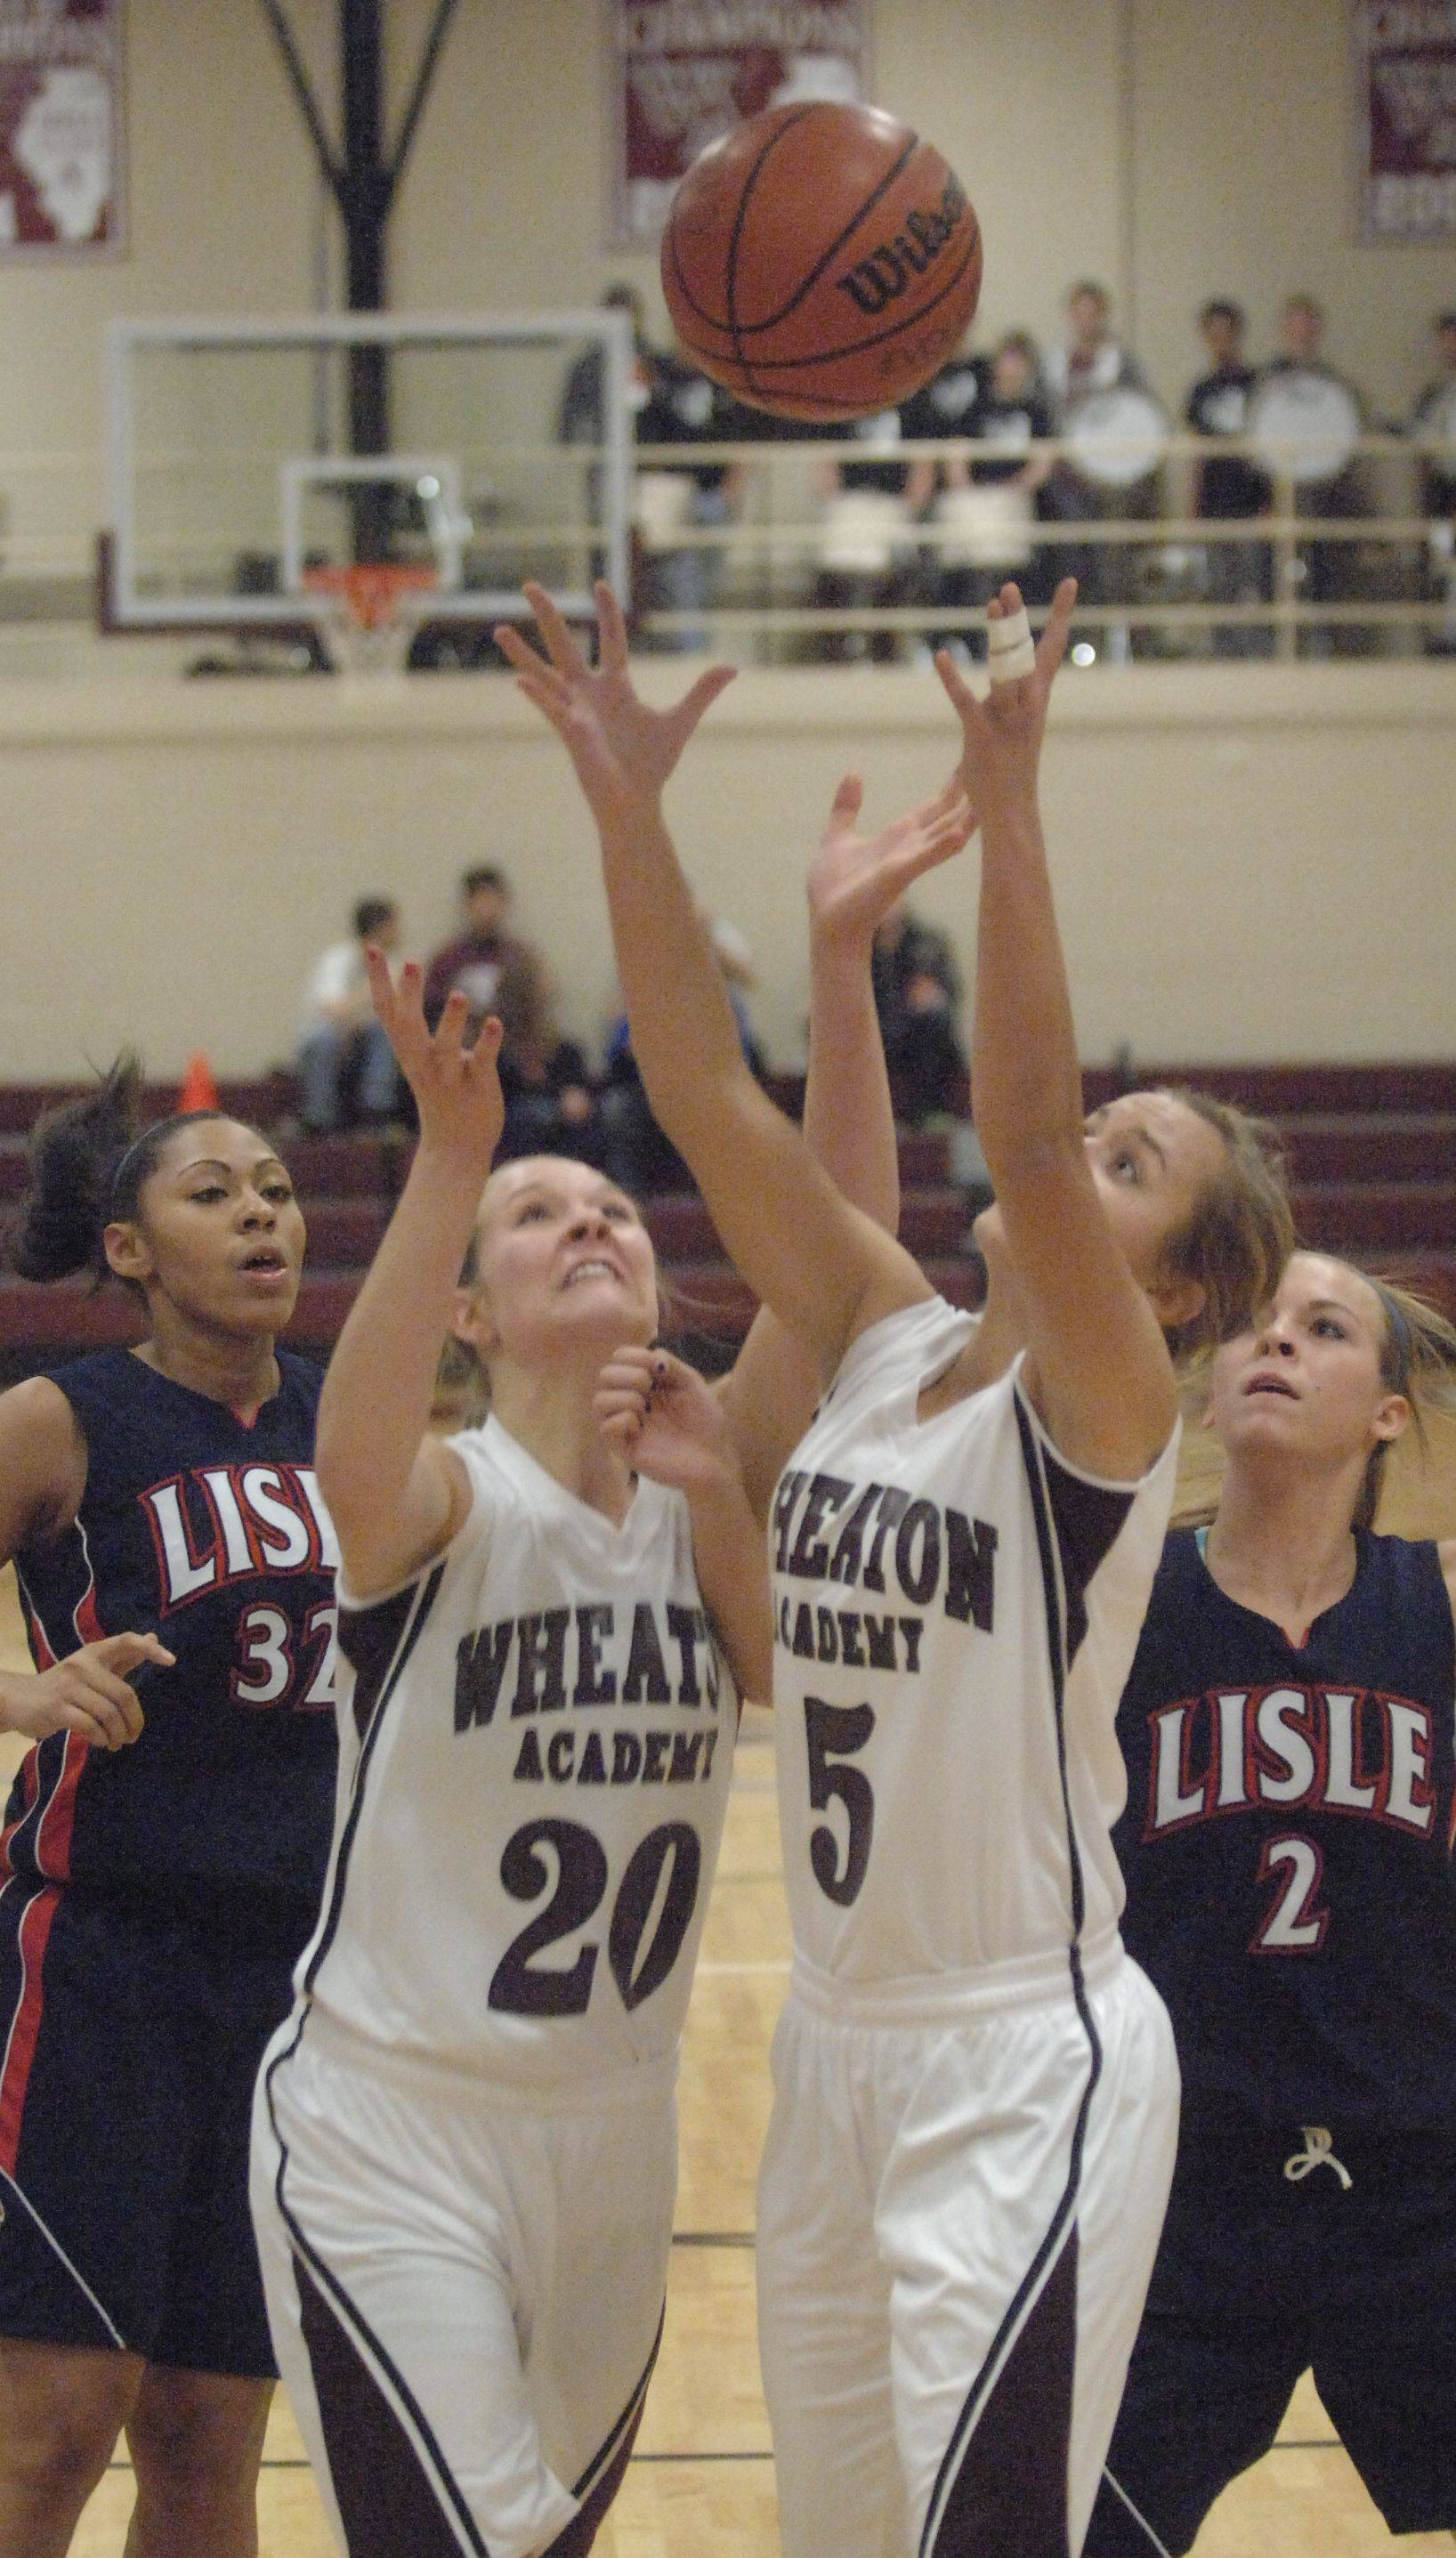 Images from the Lisle vs. Wheaton Academy girls basketball game in West Chicago on Tuesday, November 29.